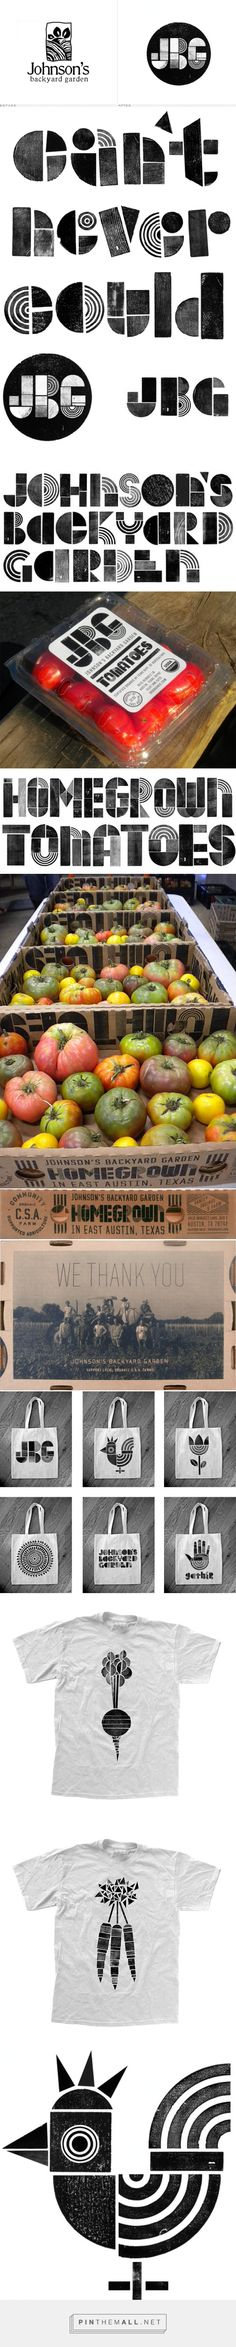 Johnson's Backyard Garden (JBG) packaging branding via UnderConsideration curated by Packaging Diva PD. I want some of these heritage tomatoes now.